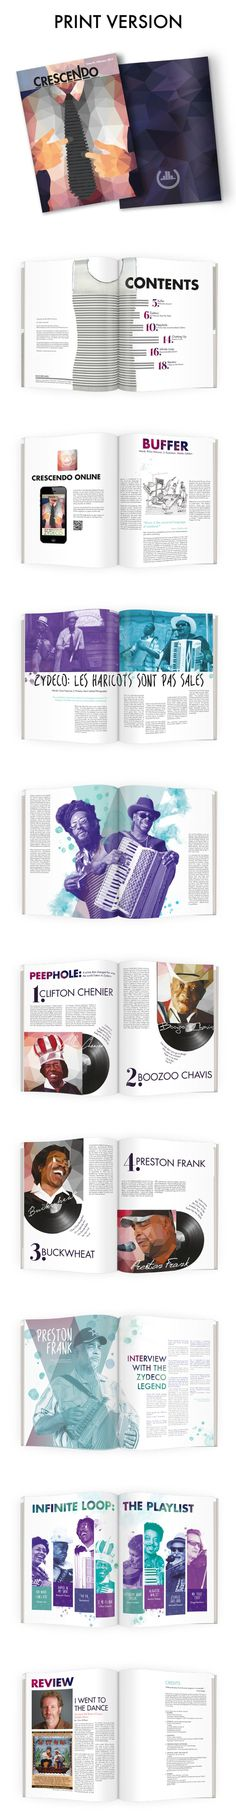 Print Layouts for Crescendo Magazine- The Zydeco Issue #zydeco #design #music #layout #crescendo #editorial #magazine